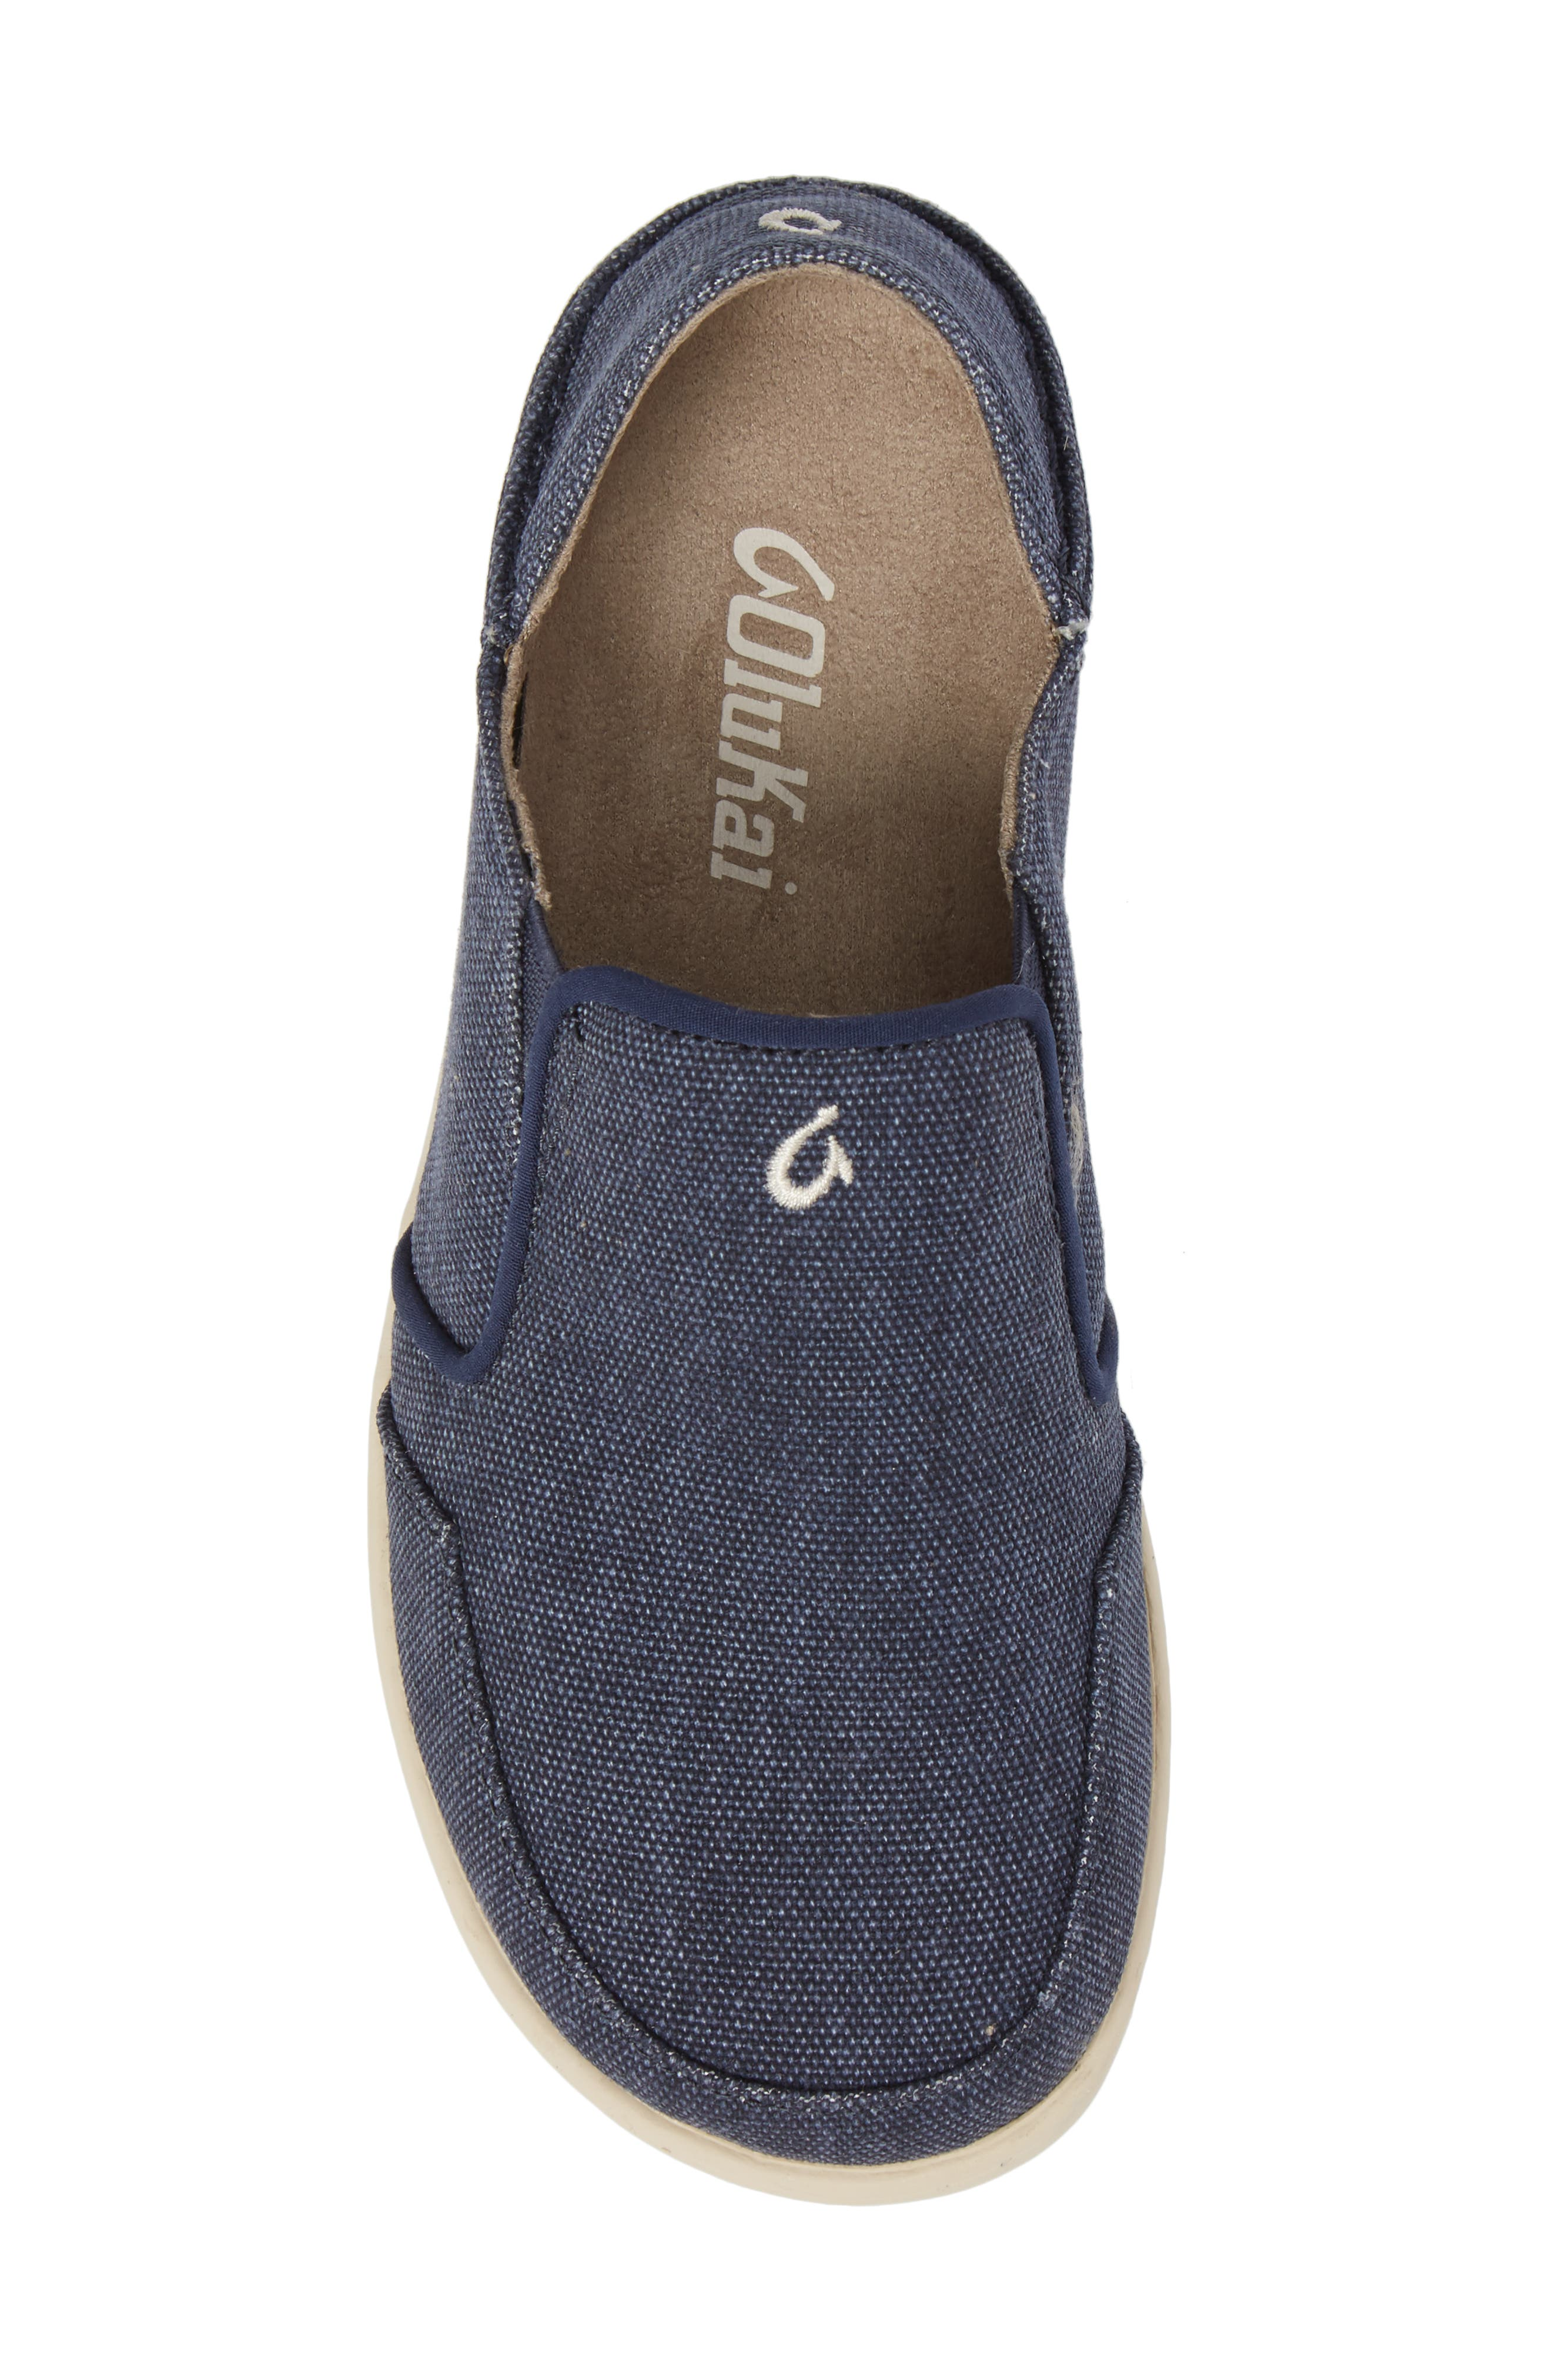 Nohea Lole Collapsible Slip-On,                             Alternate thumbnail 5, color,                             Trench Blue